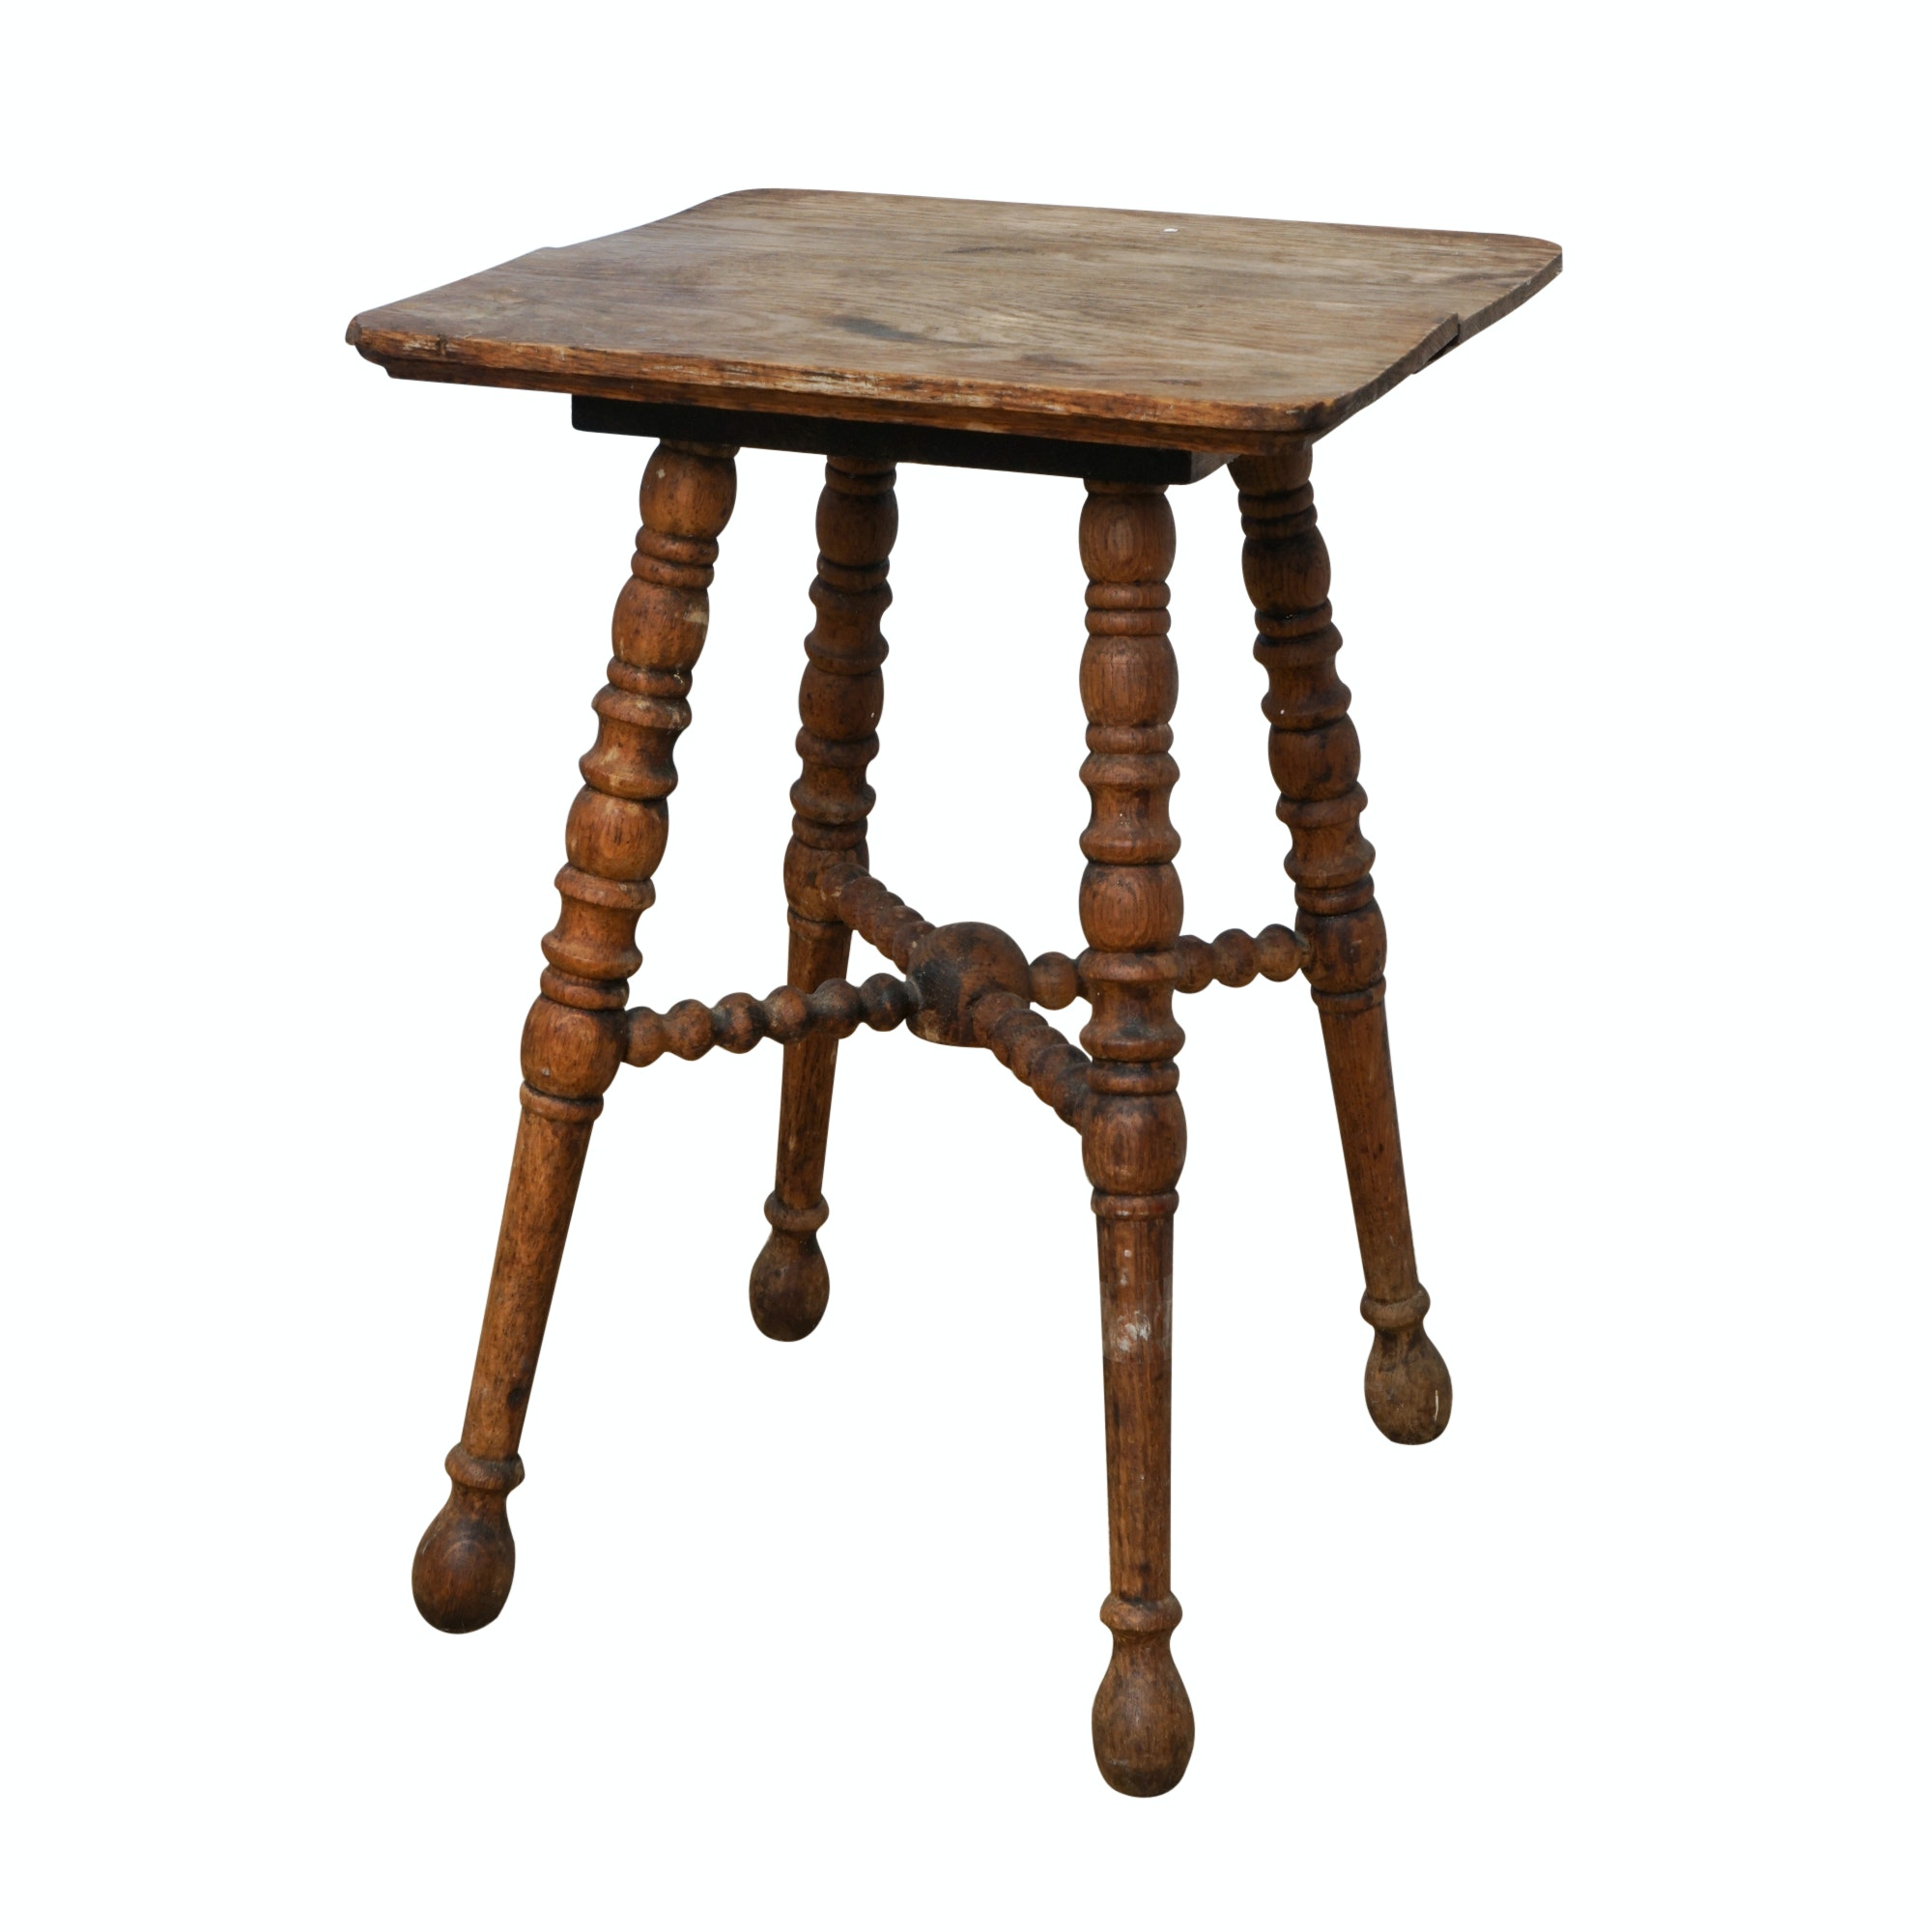 Antique Oak Spool-Turned Accent Table